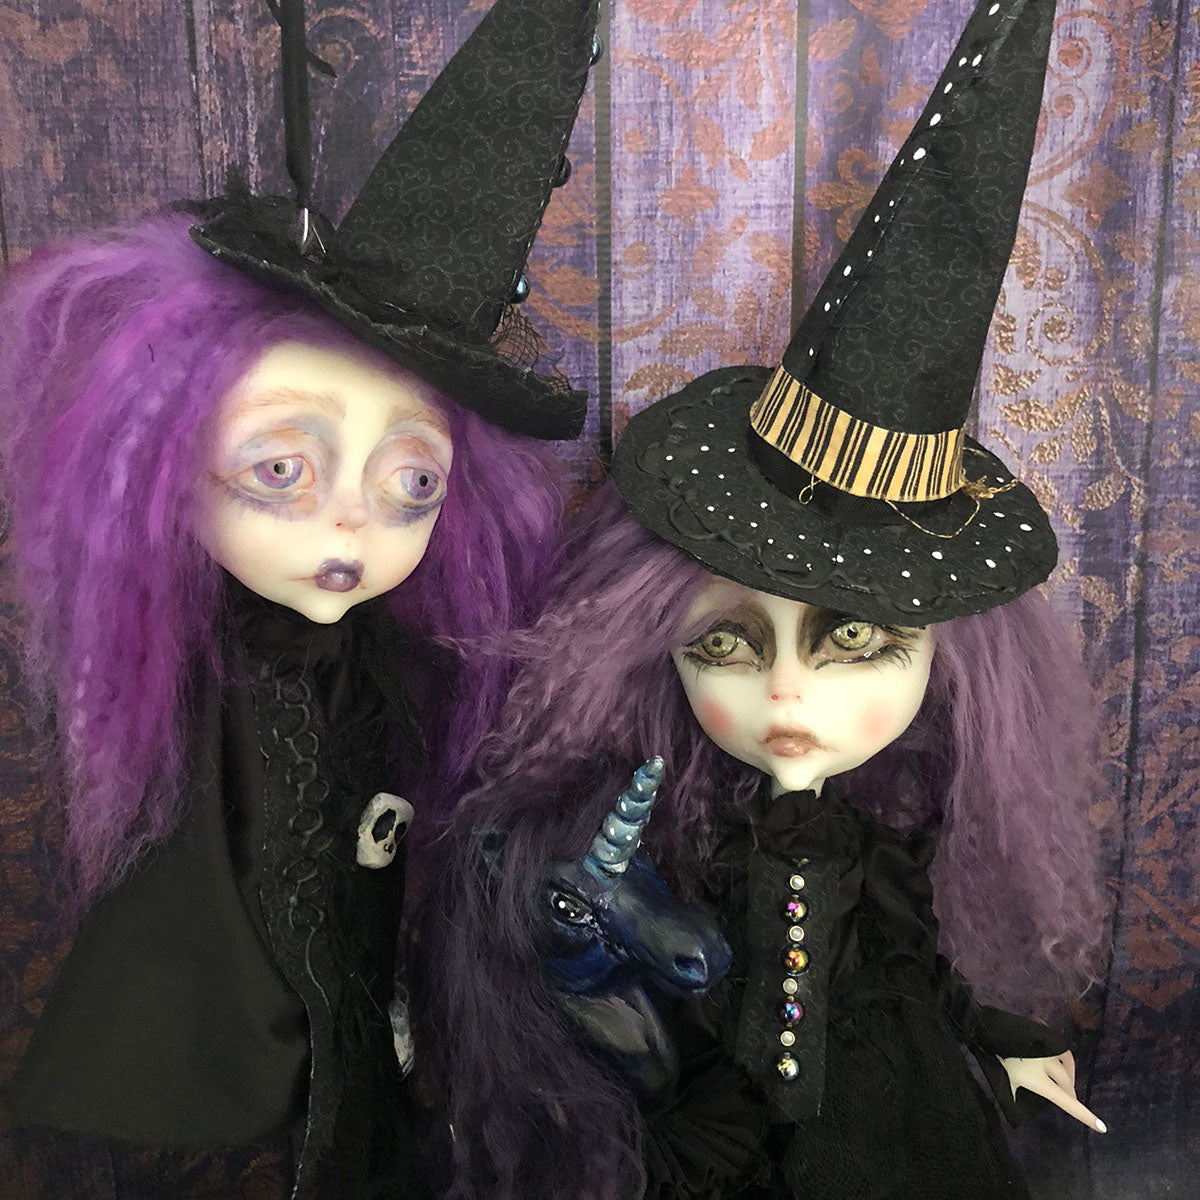 Decapitated Witch Head Kamdyn ornament OOAK LuLusApple Art Doll